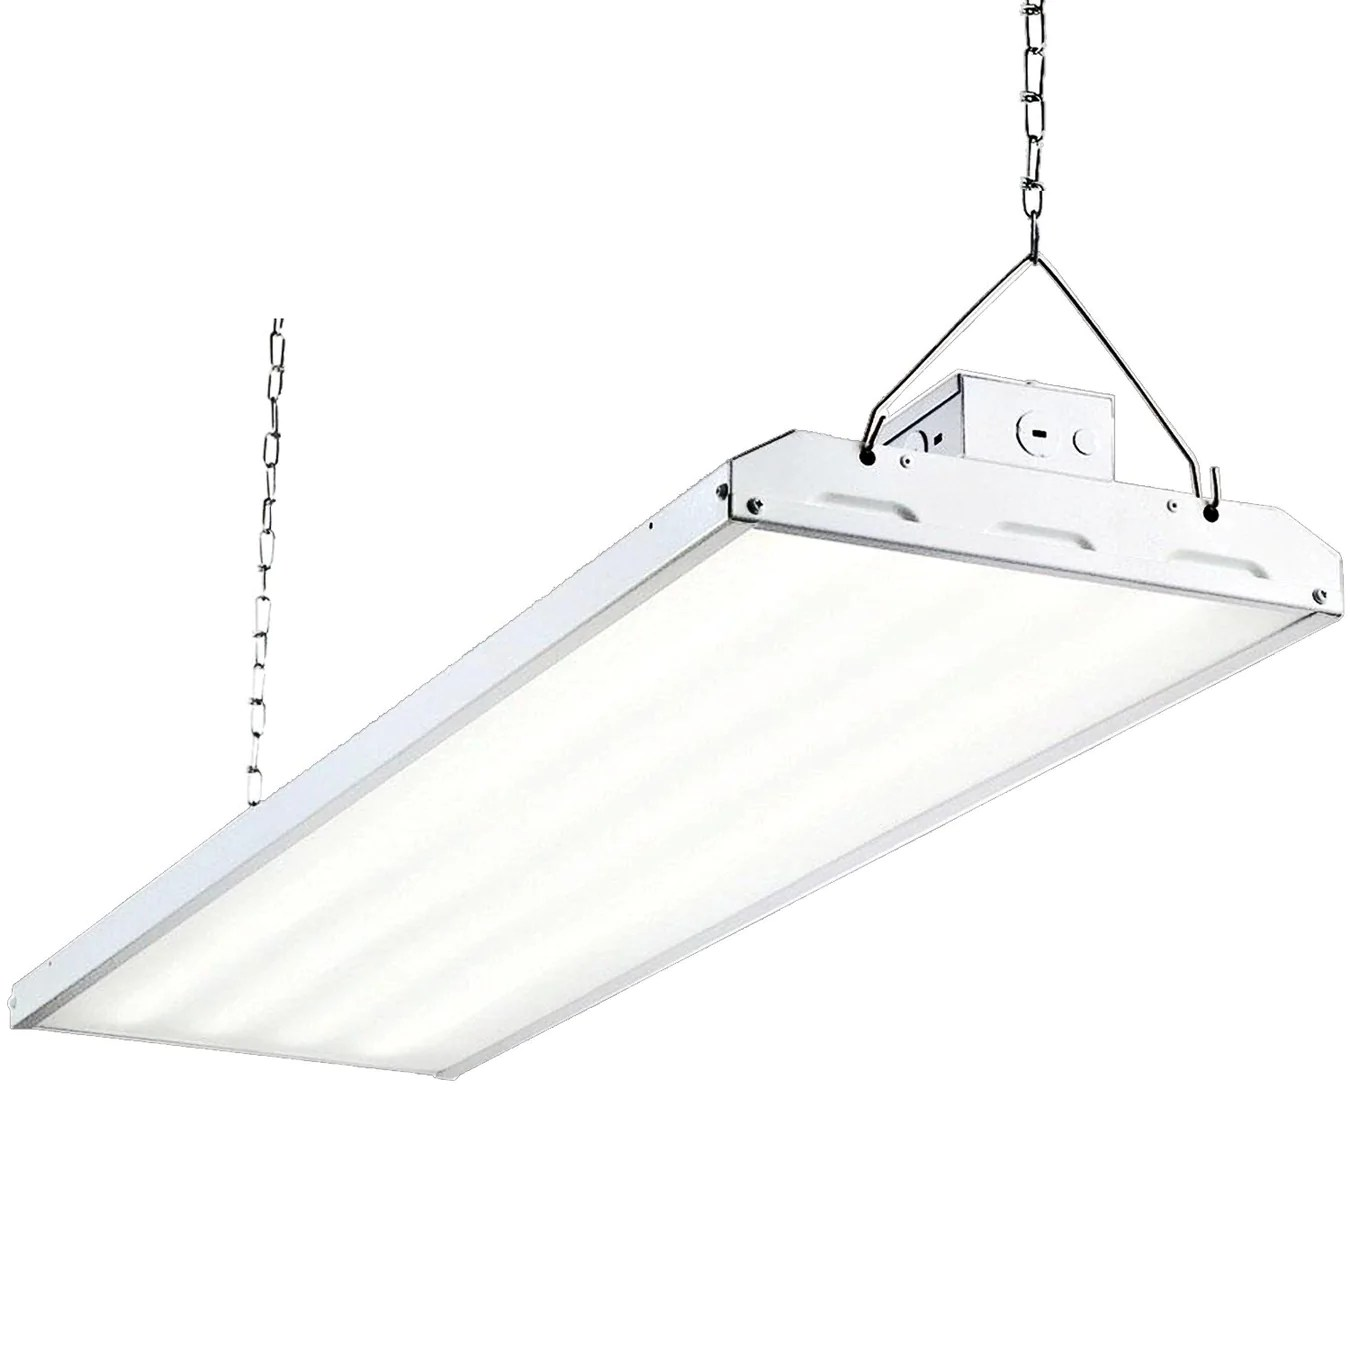 small resolution of led linear high bay light